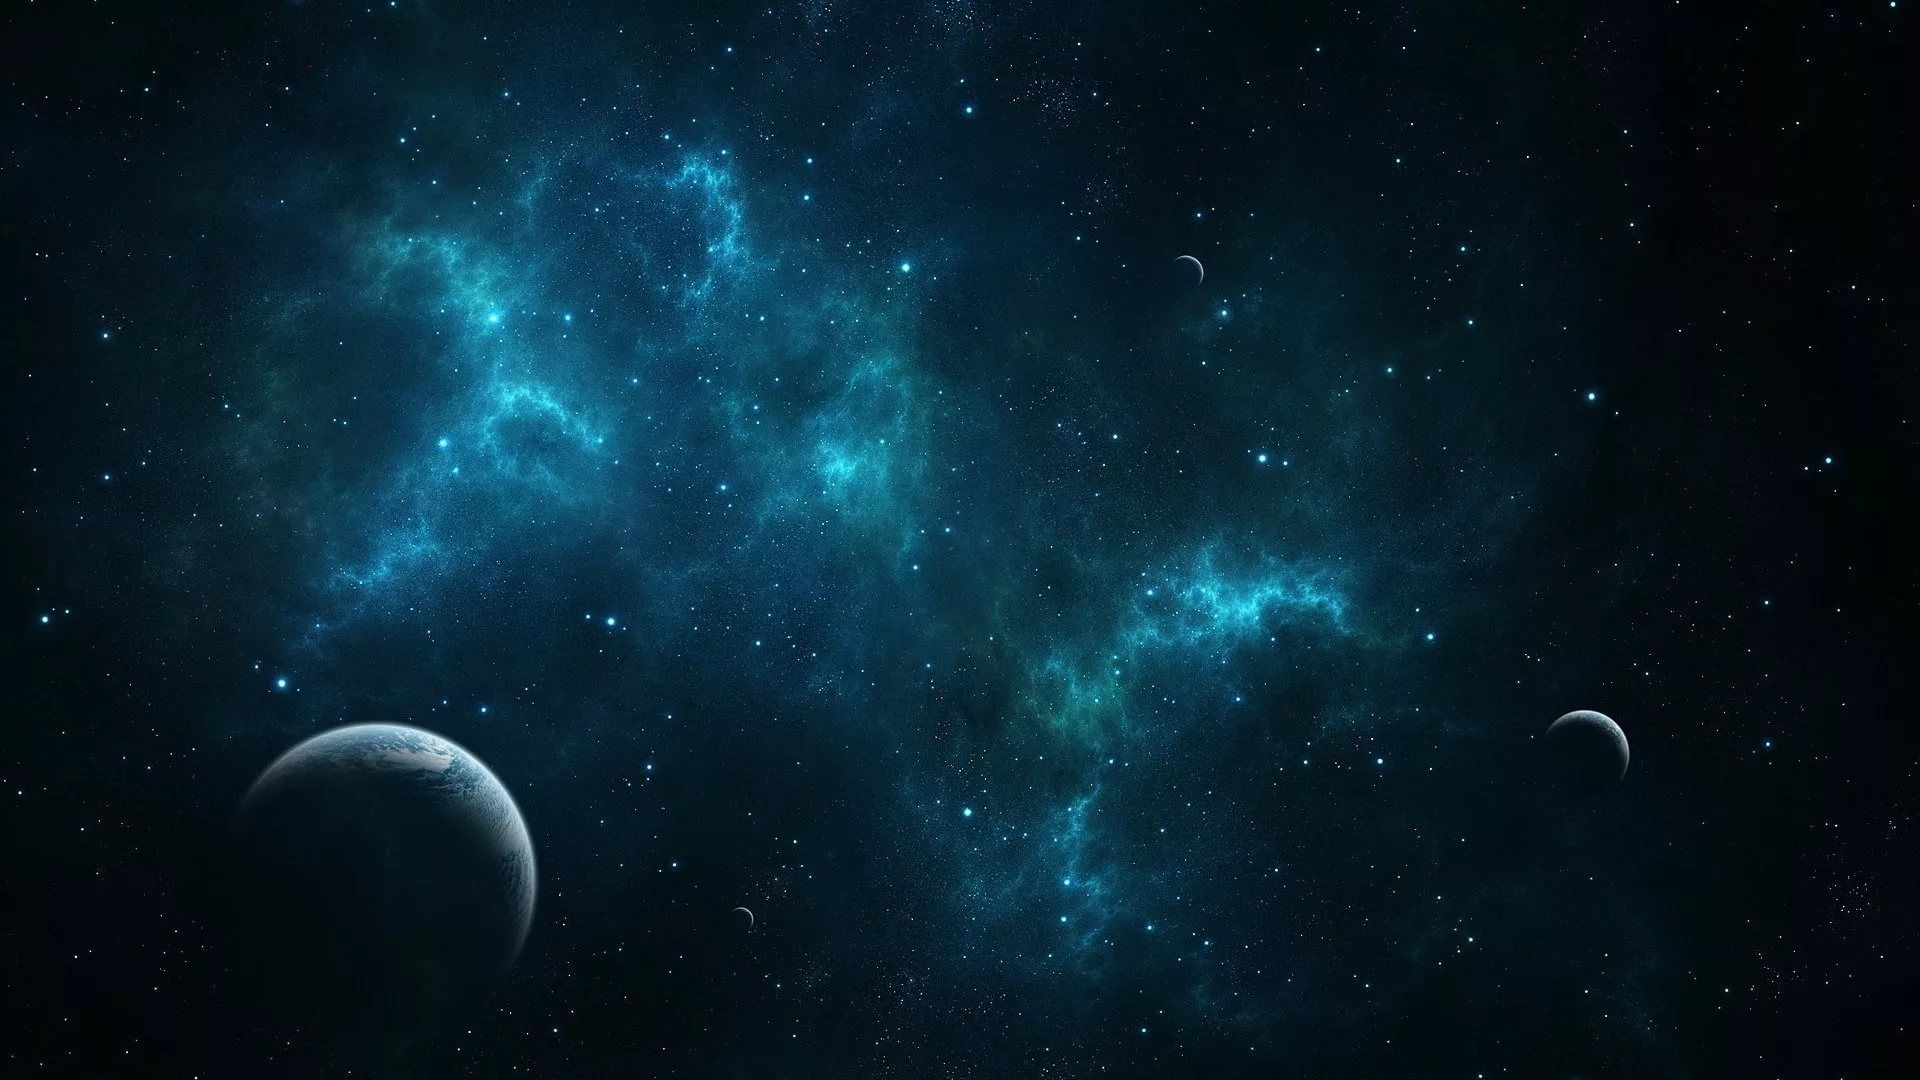 Blue Galaxy Free Wallpaper and Background